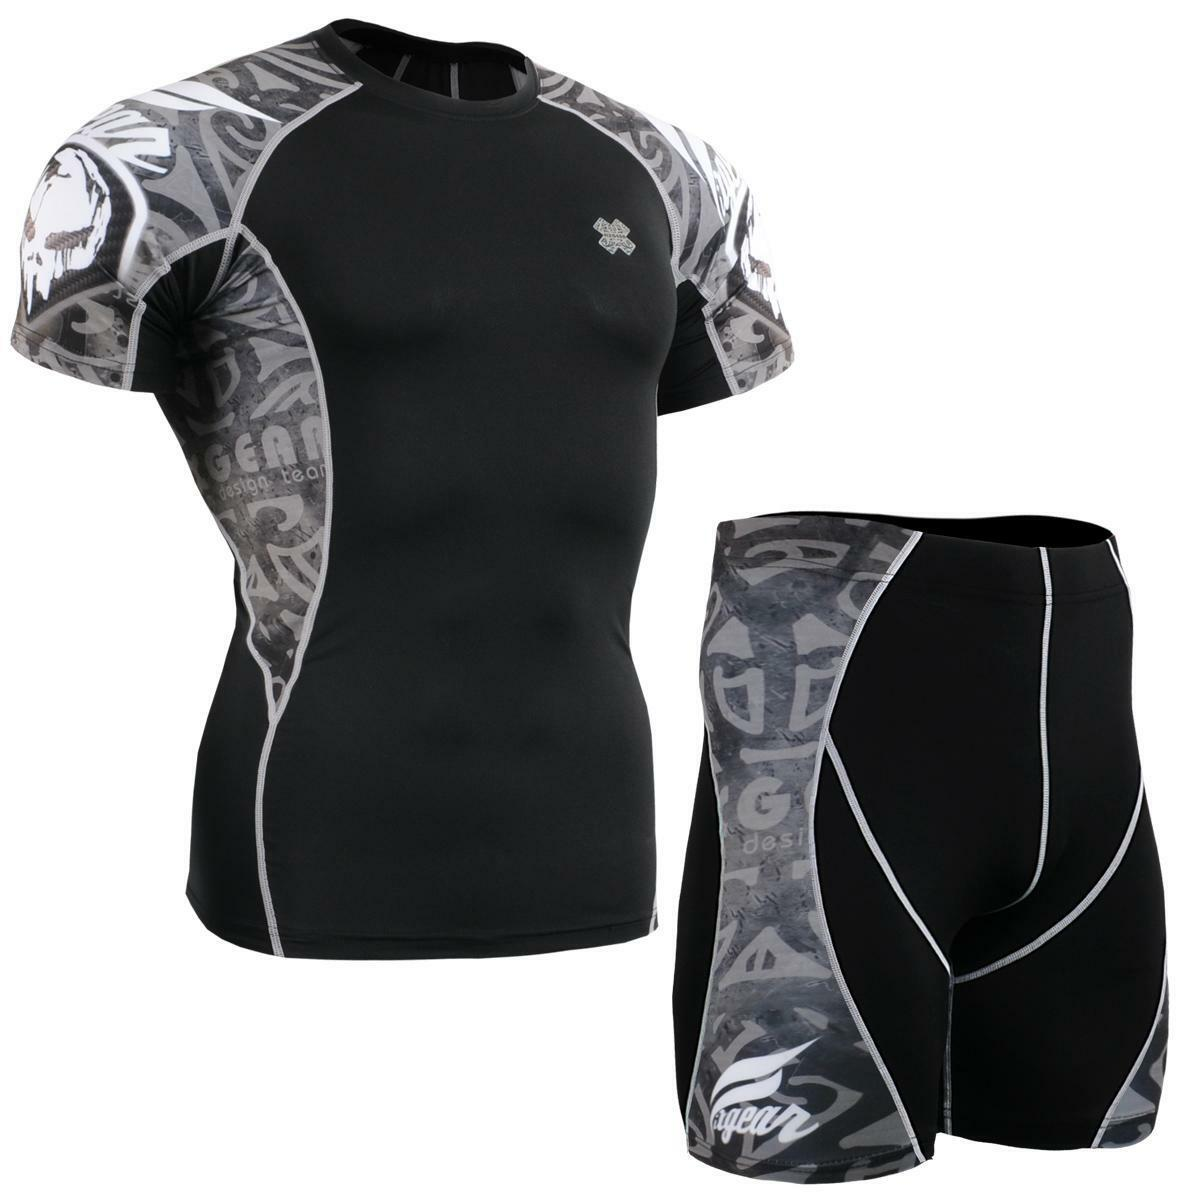 FIXGEAR C2S P2S-B43 SET Compression Shirts & Shorts Skin-tight MMA Training Gym